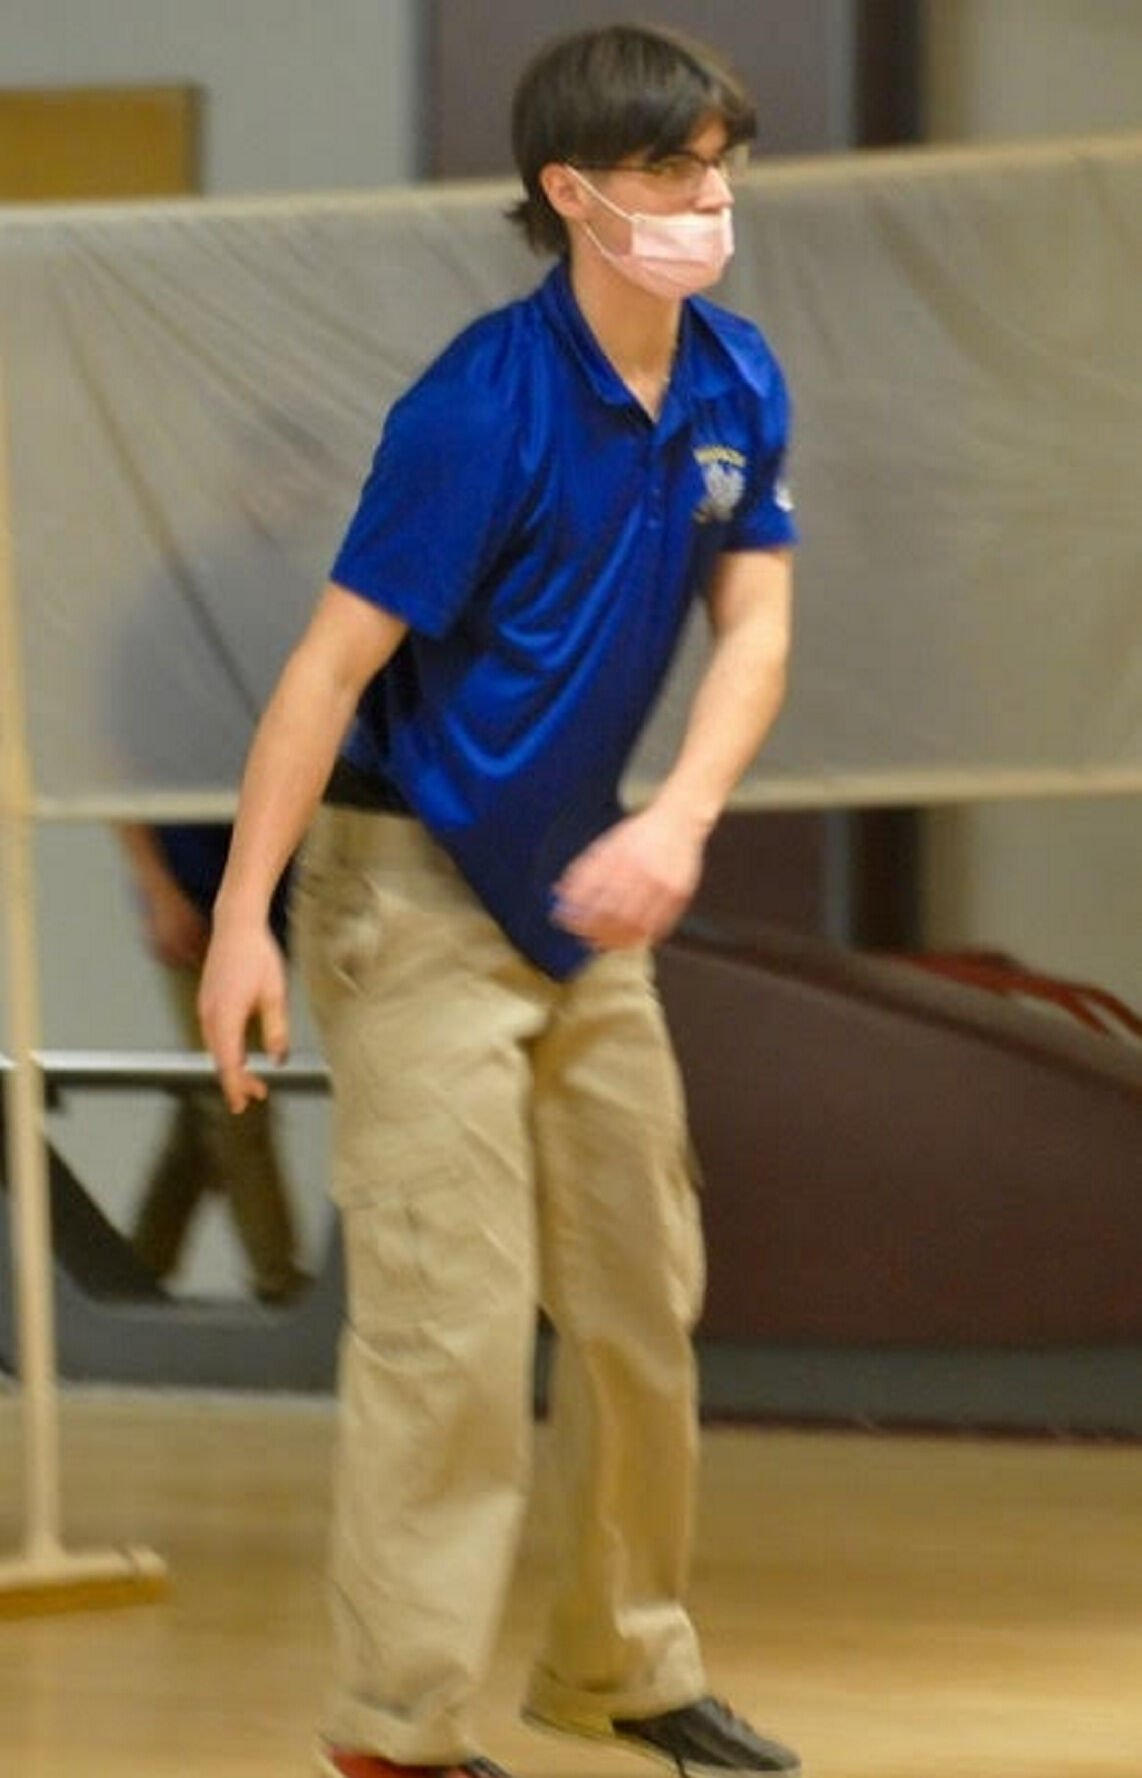 PATROON BOWLING: 'Hawks celebrate Senior Day with victory